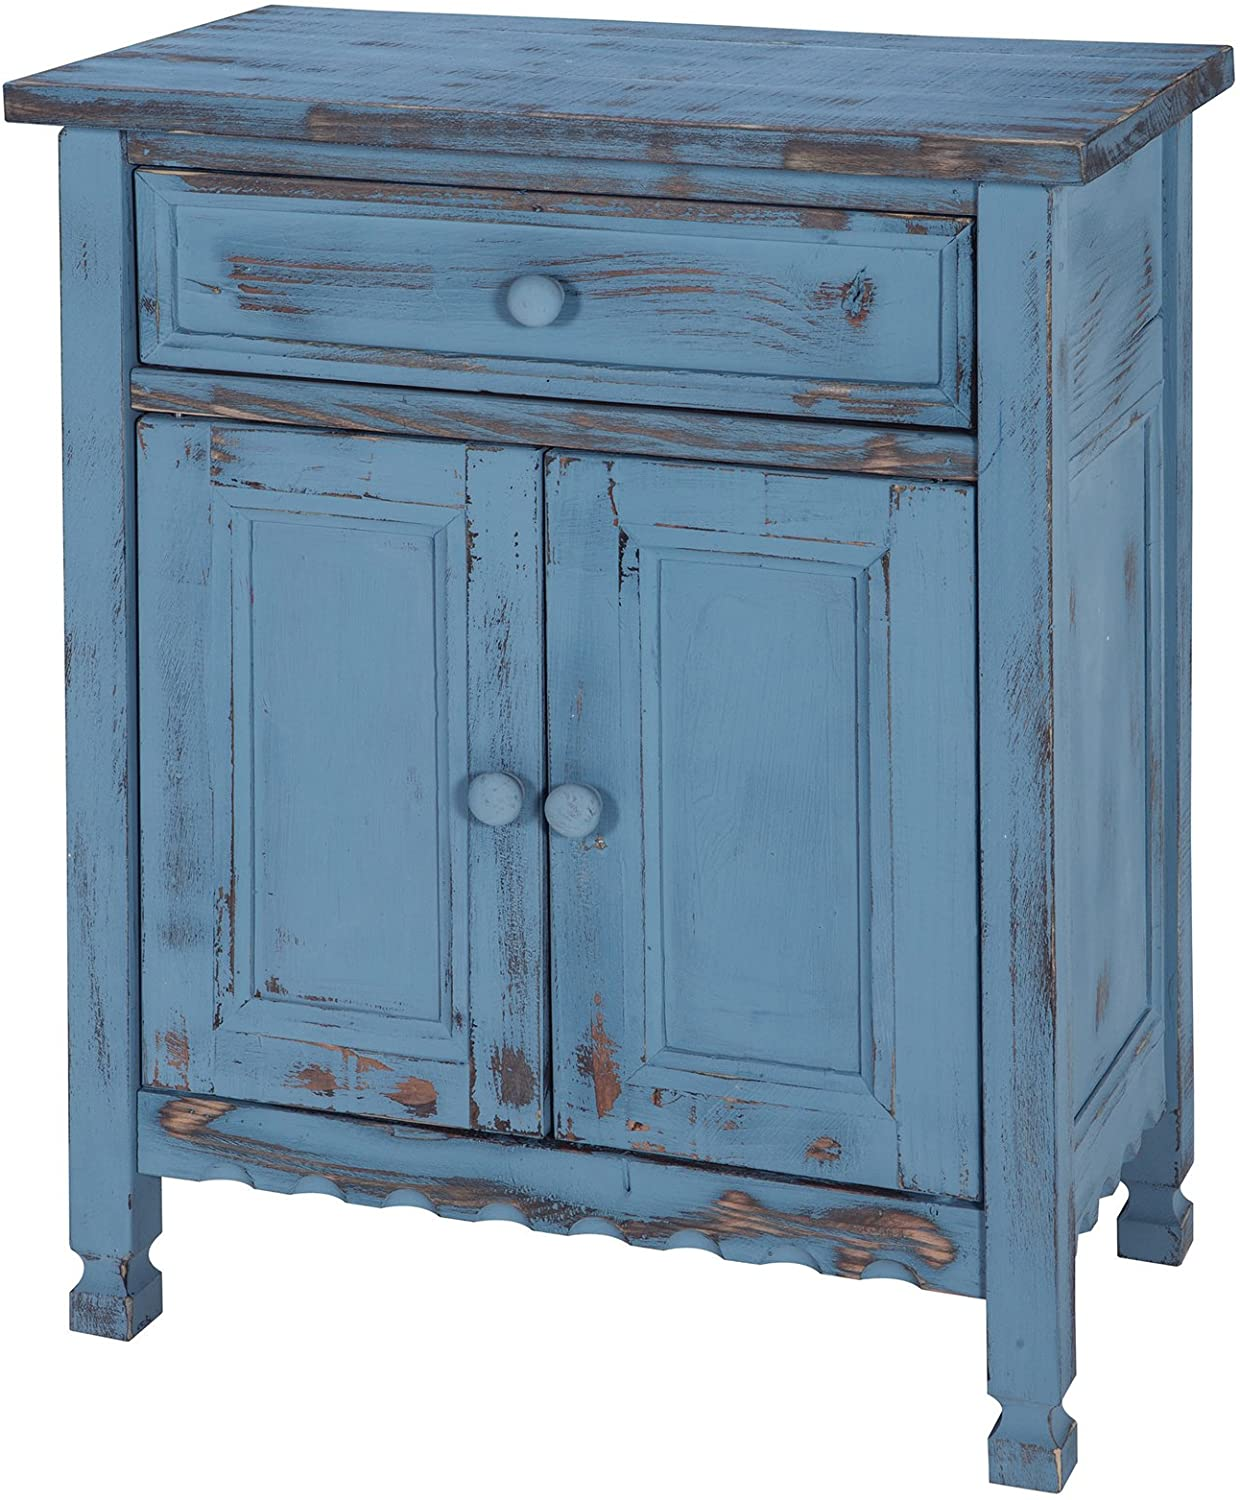 Rustic Cottage Accent Cabinet with 1 Drawer and 2 Doors, Blue Antique